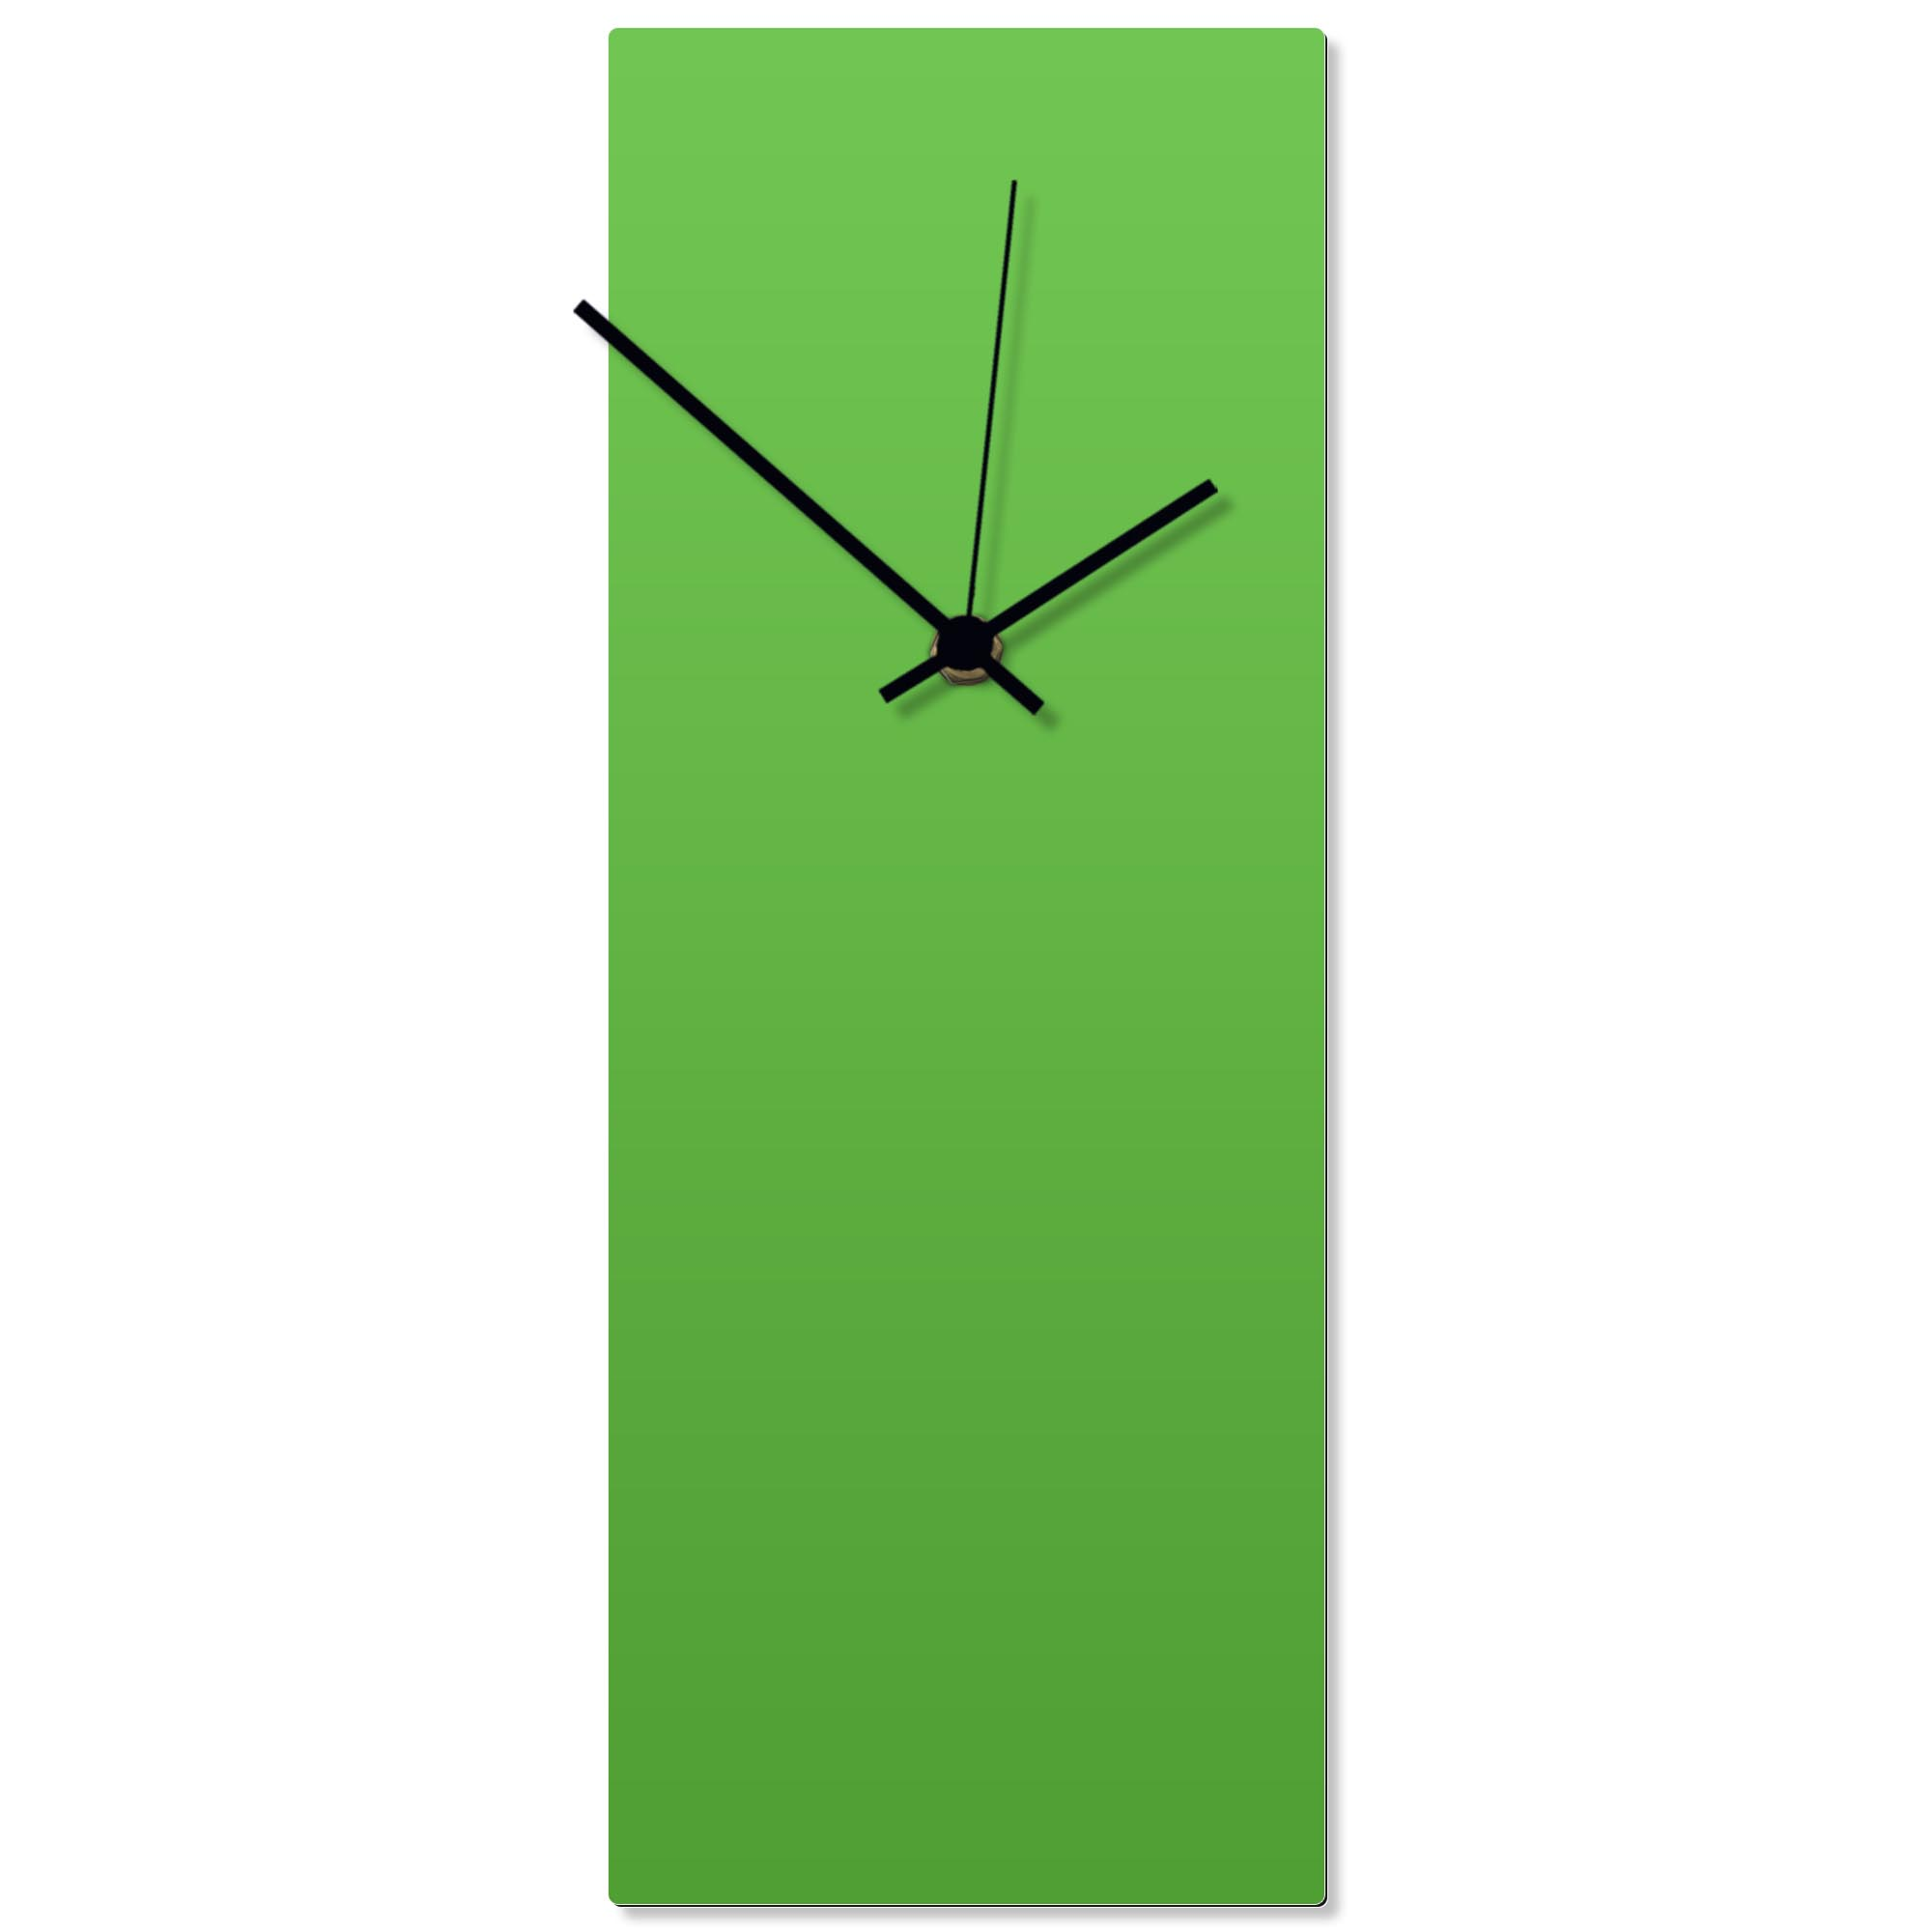 Greenout Black Clock 6x16in. Aluminum Polymetal